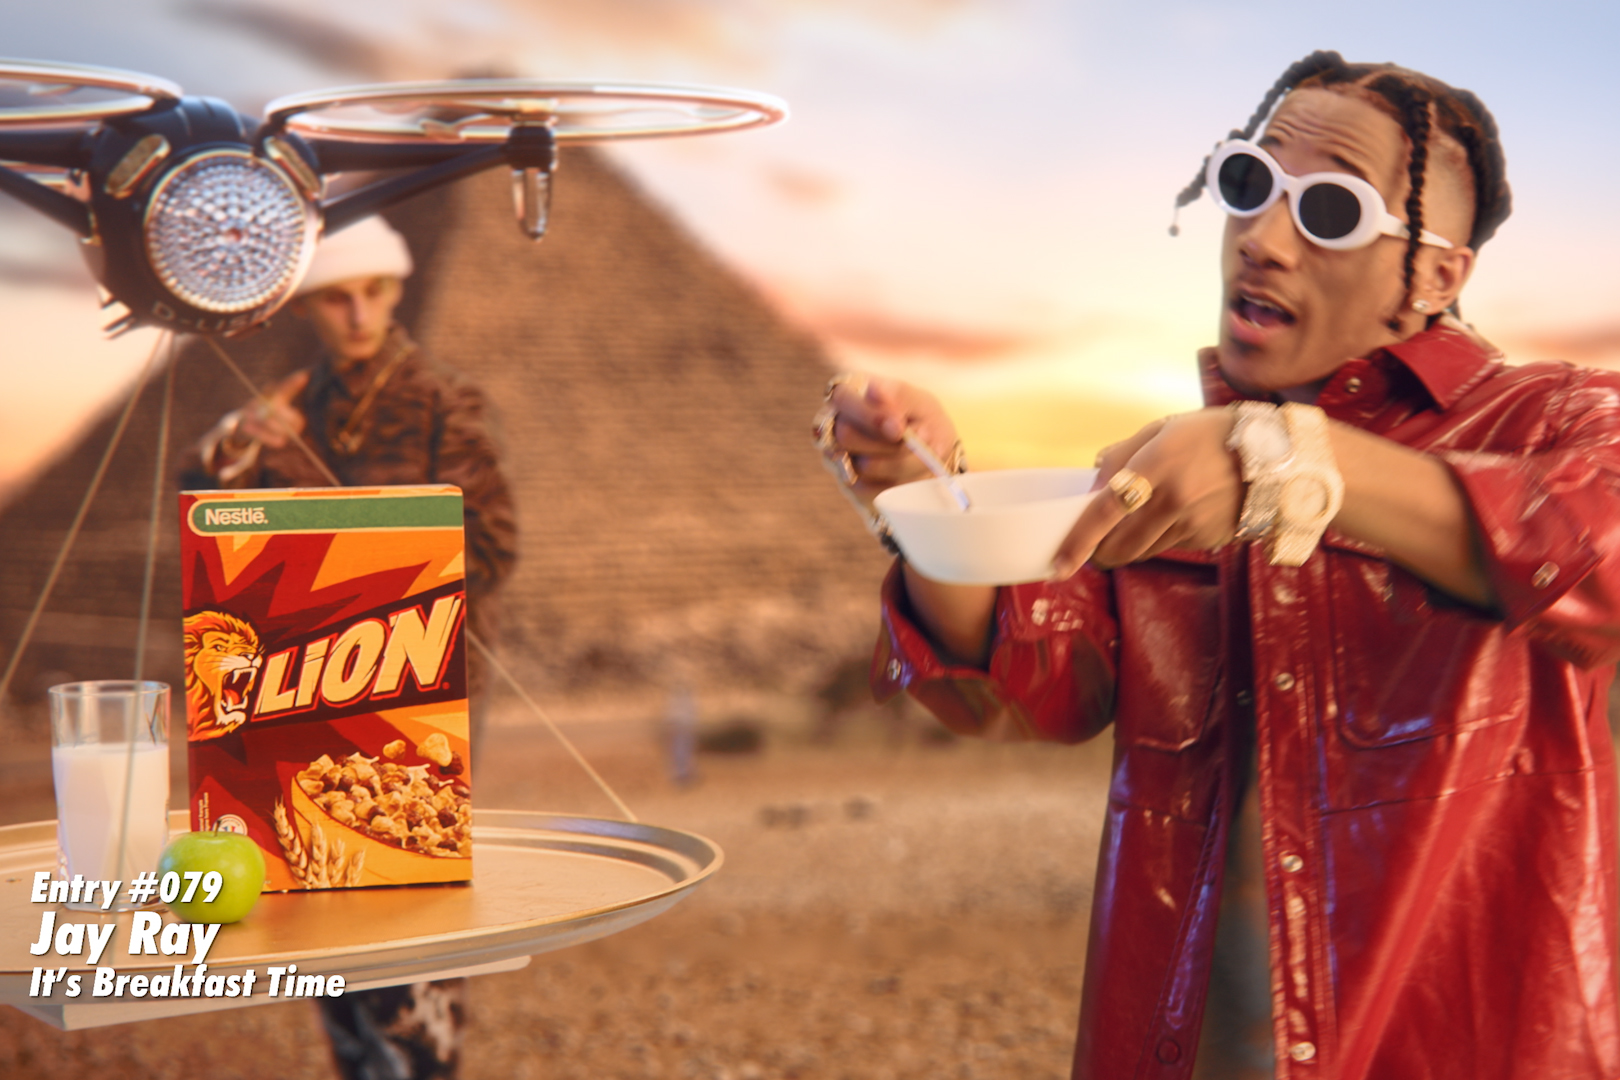 Lion Cereal: King of the Jingle